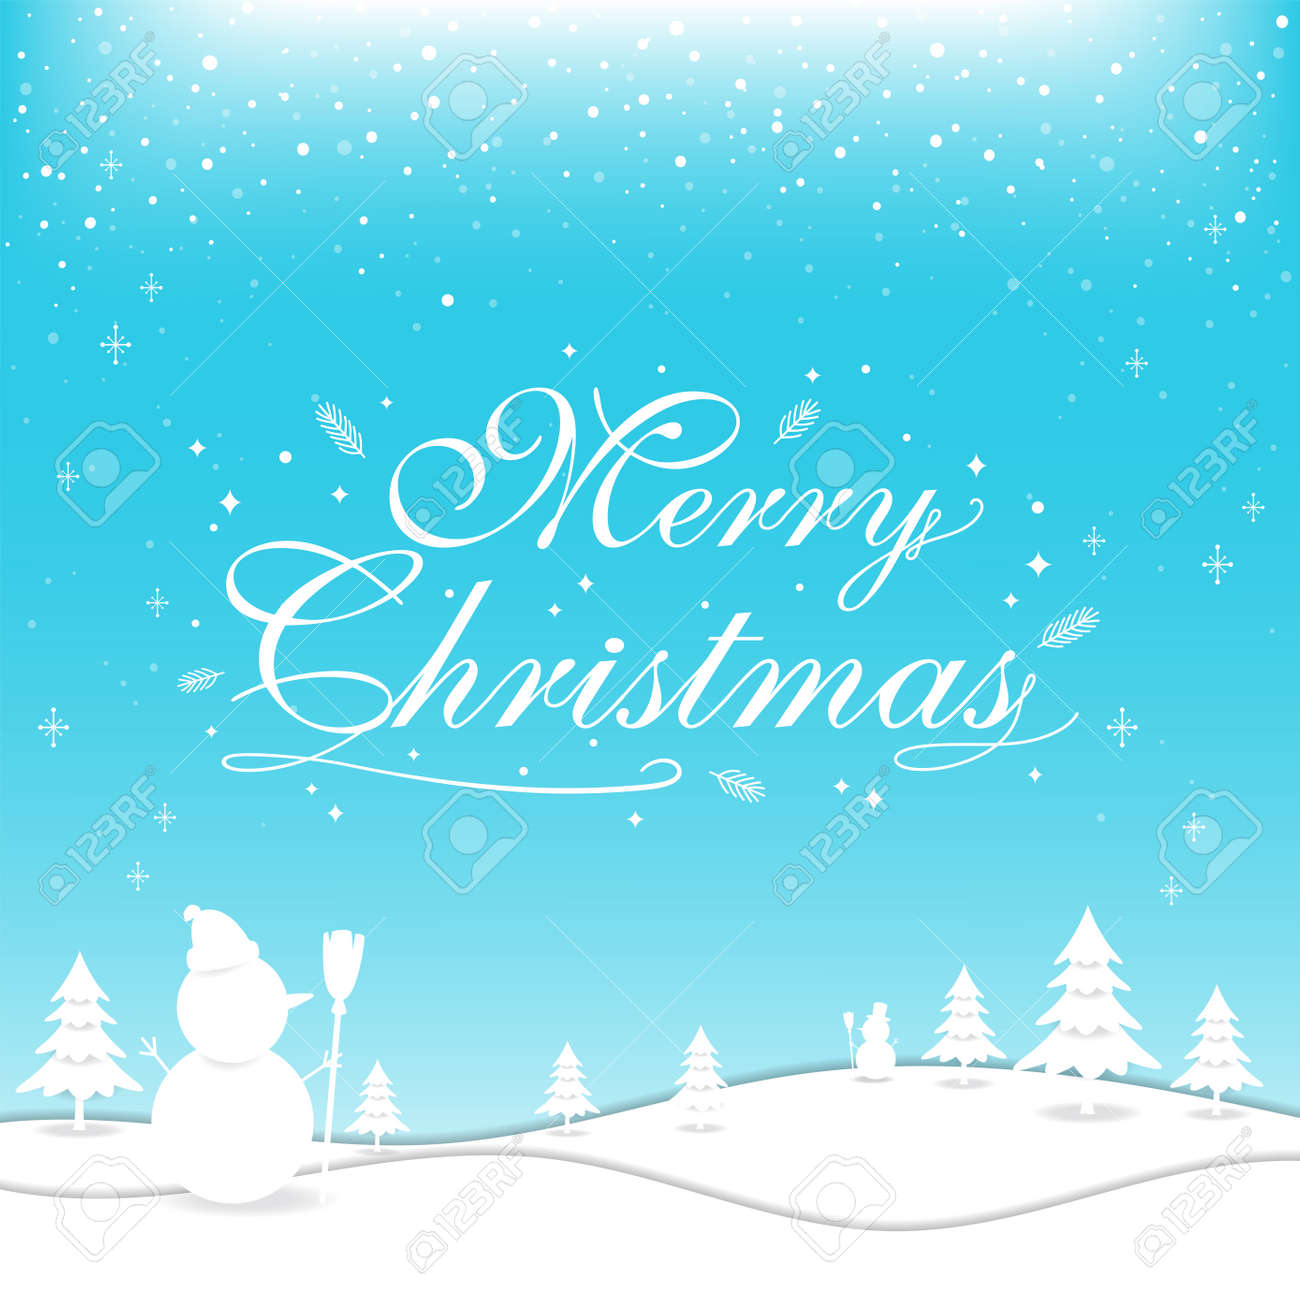 Merry Christmas banner poster template with festive elements; snowman, pine tree - 160158686